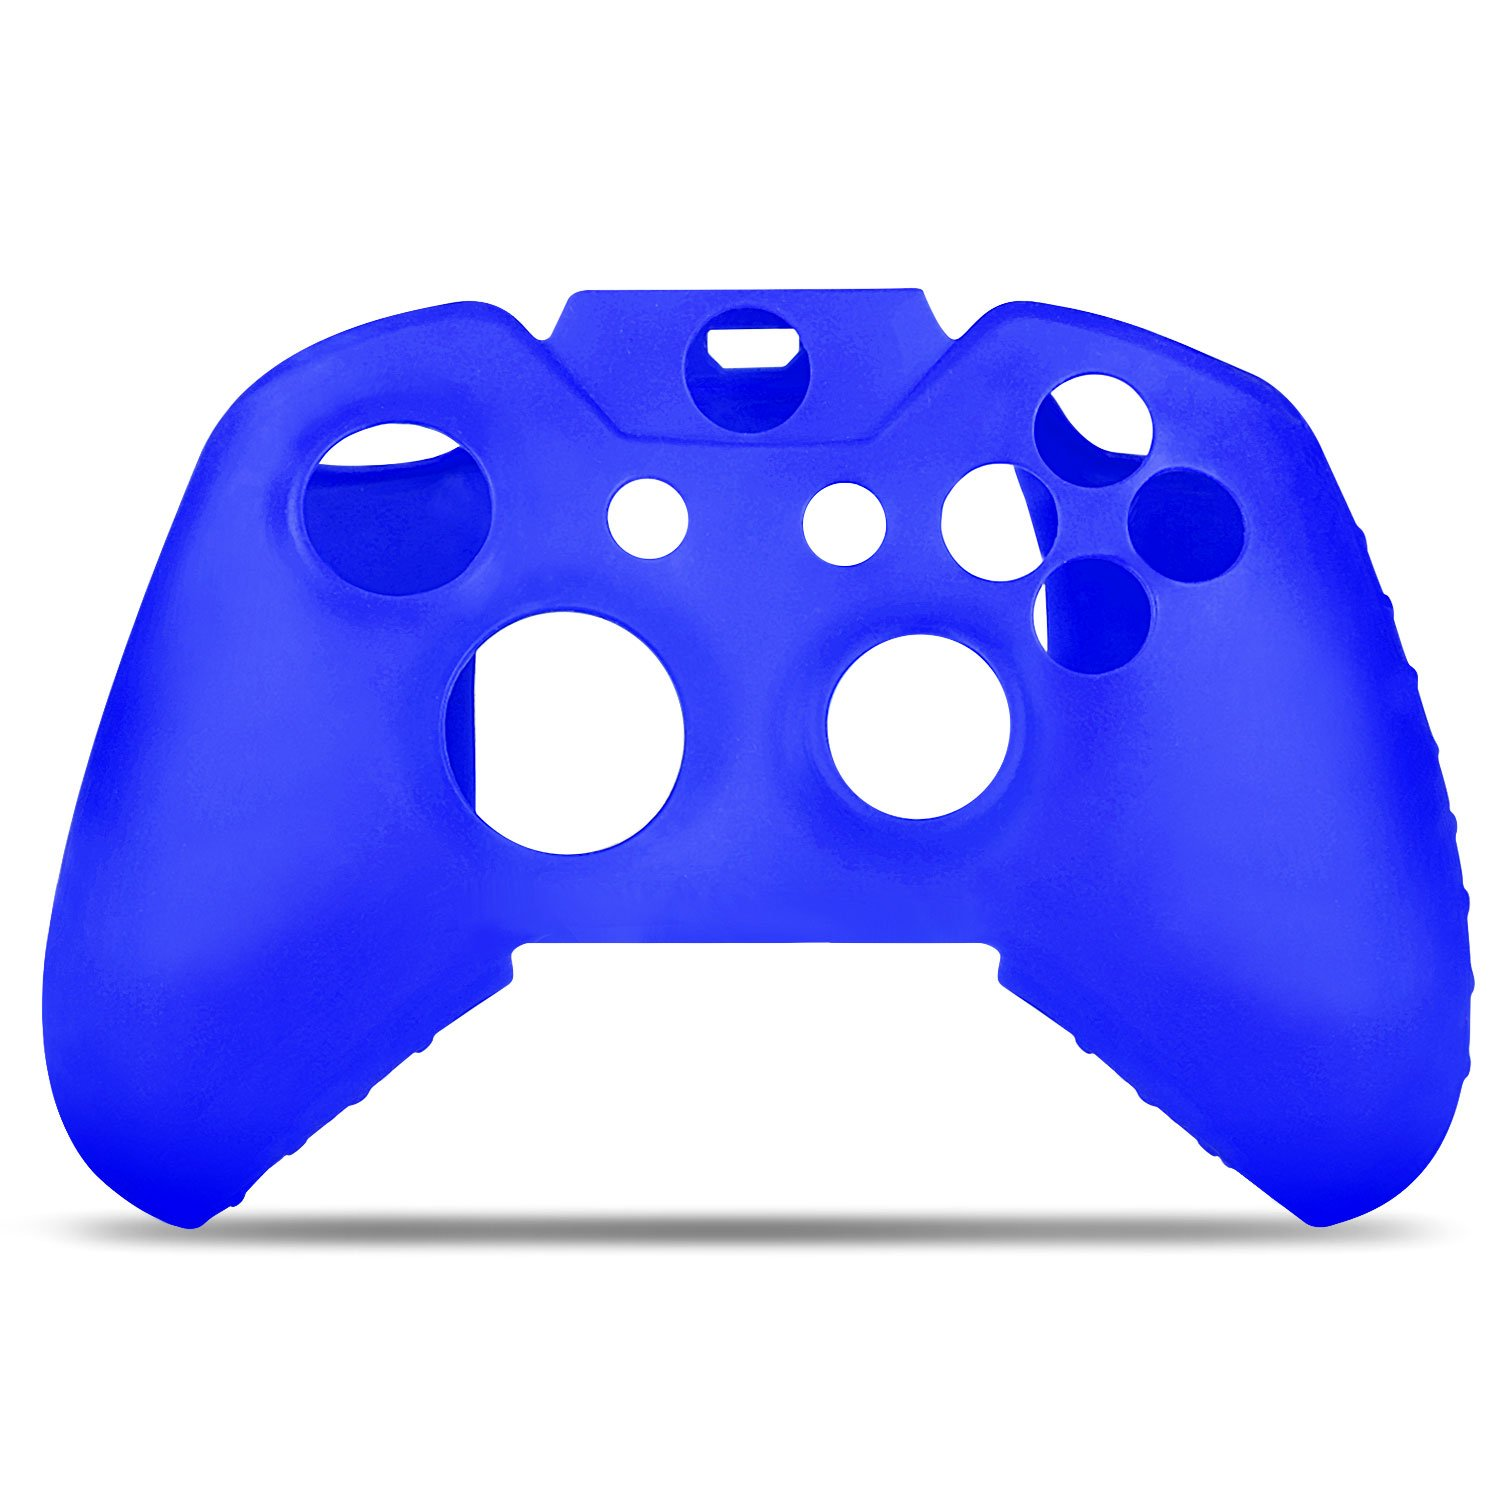 TNP Xbox One Controller Case Navy Blue Xbox One - Soft Silicone Gel Rubber Grip Case Protective Cover Skin for Xbox One Wireless Game Gaming Gamepad Controllers